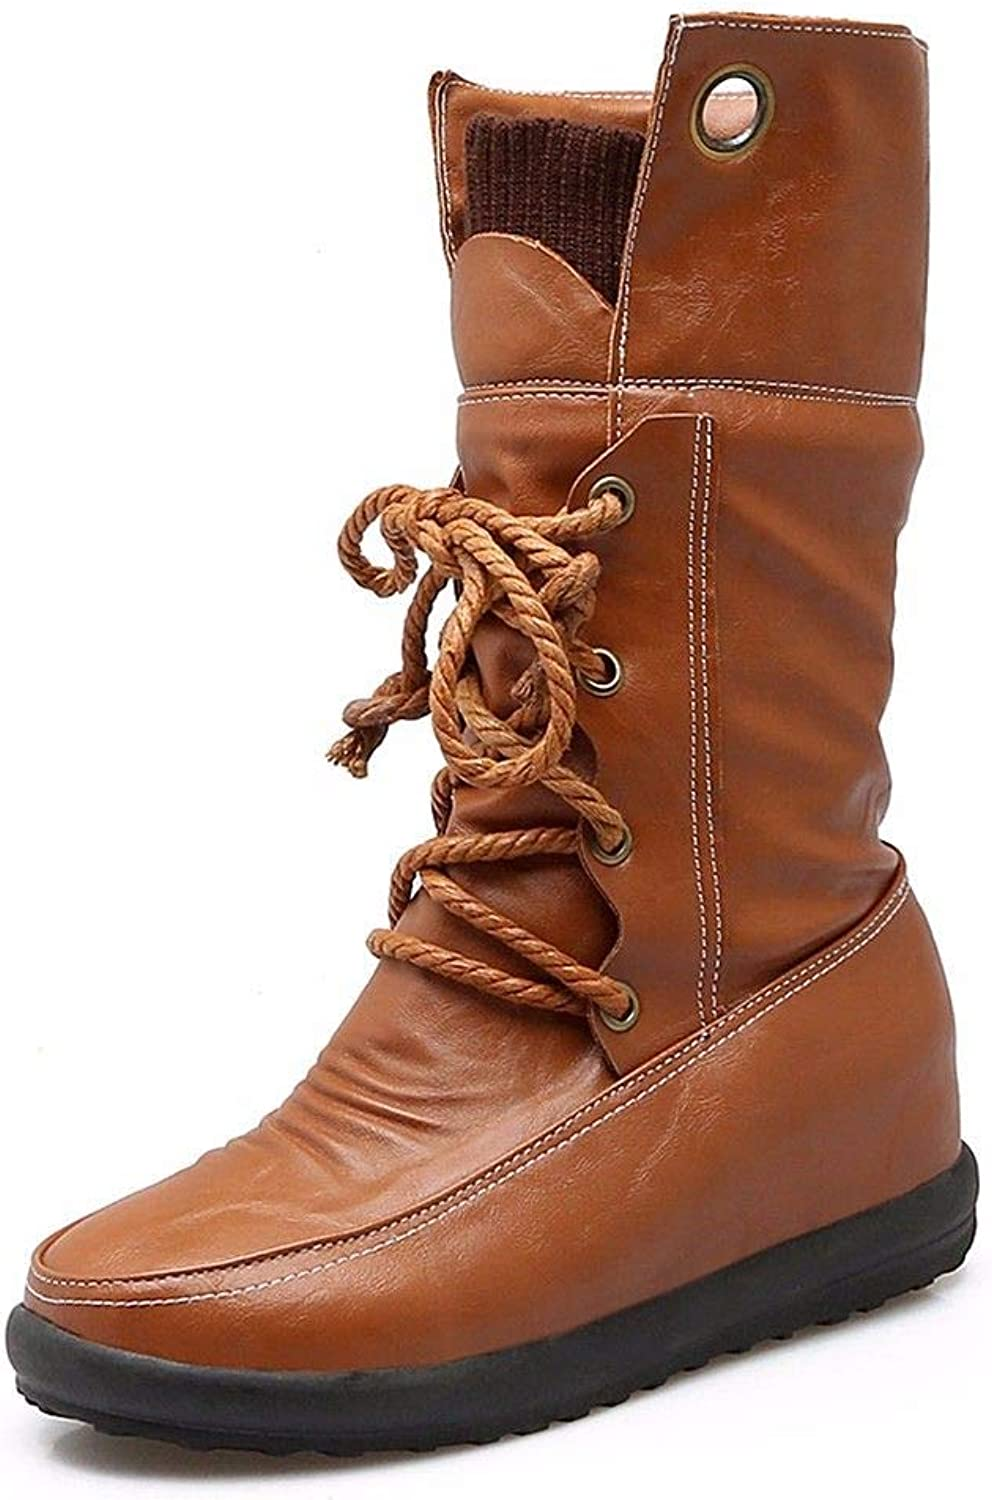 Autumn and Winter Boots Cross Straps Boot Code Martin Boots